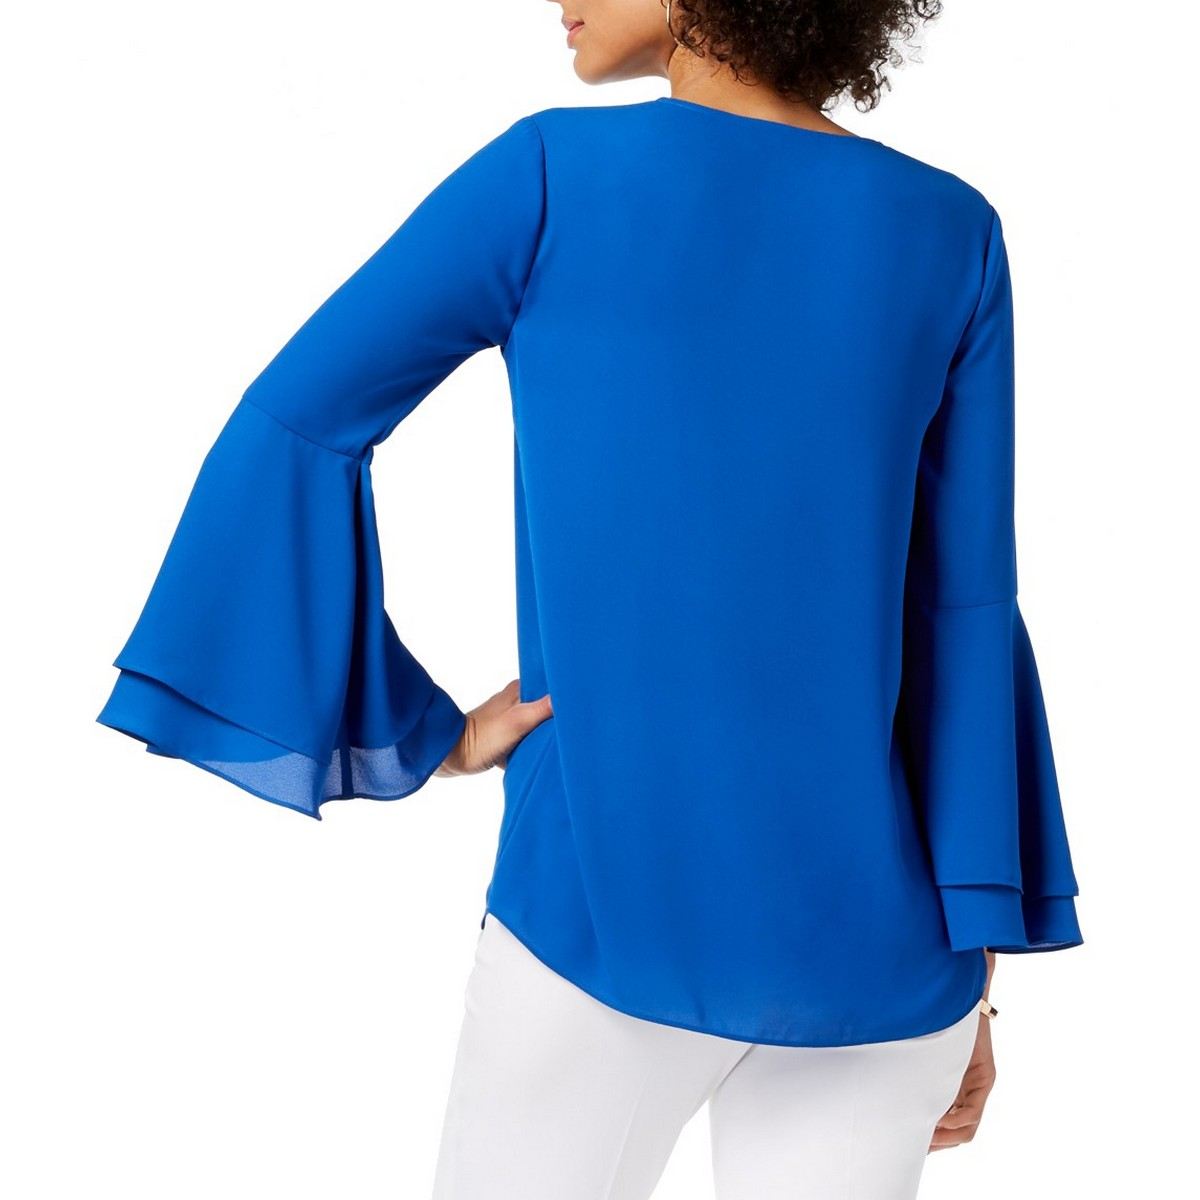 ALFANI-NEW-Women-039-s-V-neck-Bell-Sleeve-Blouse-Shirt-Top-TEDO thumbnail 6